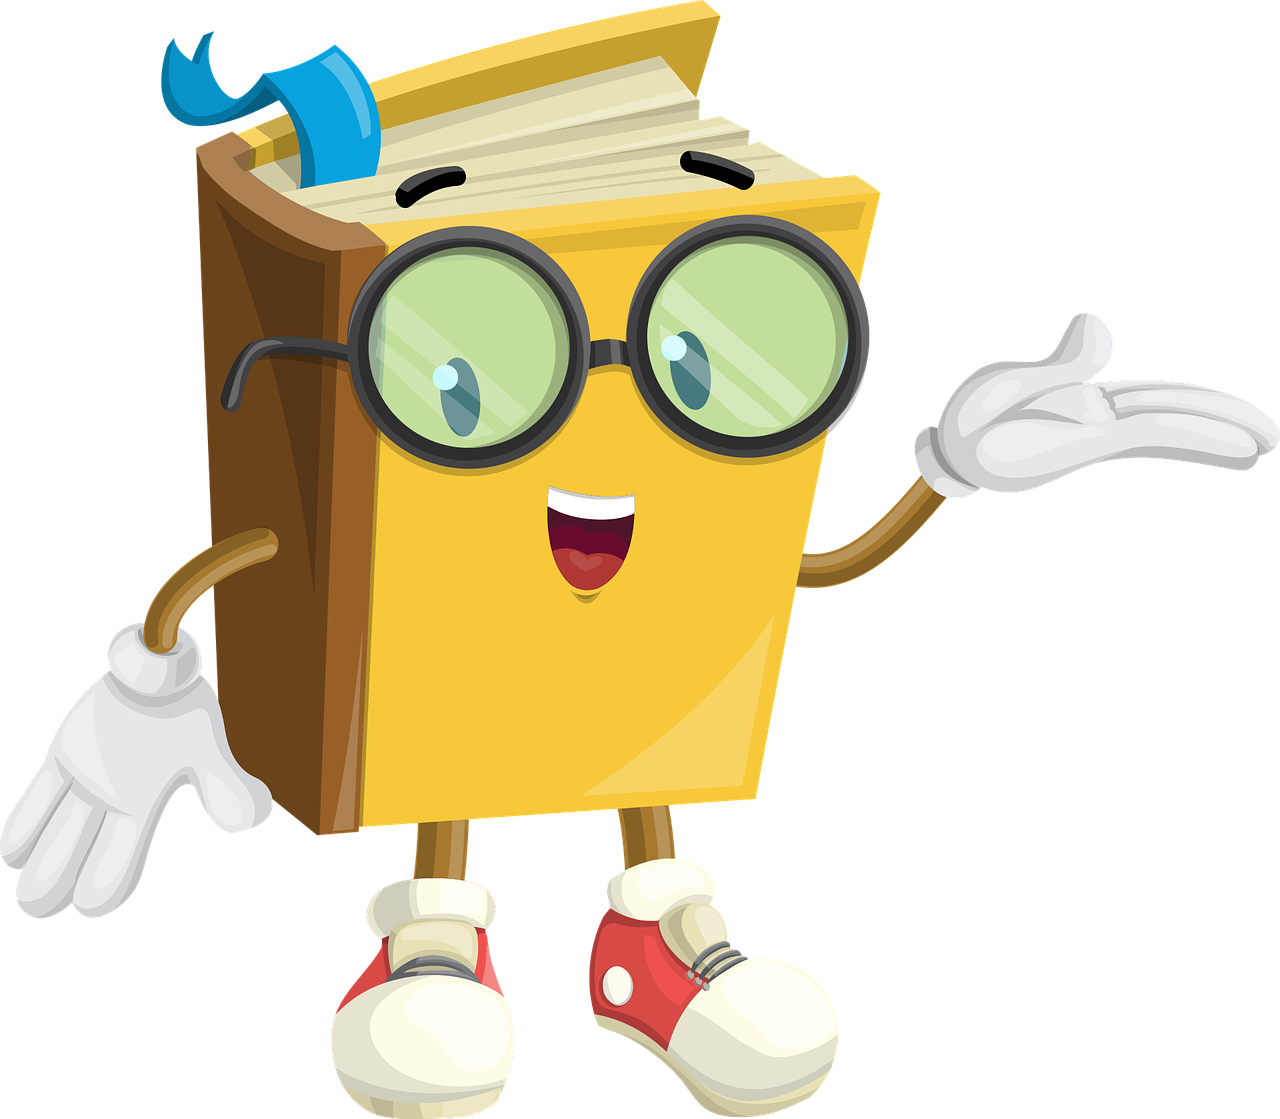 Character in book clipart clip art Book Character Glasses Show PNG Image - Picpng clip art